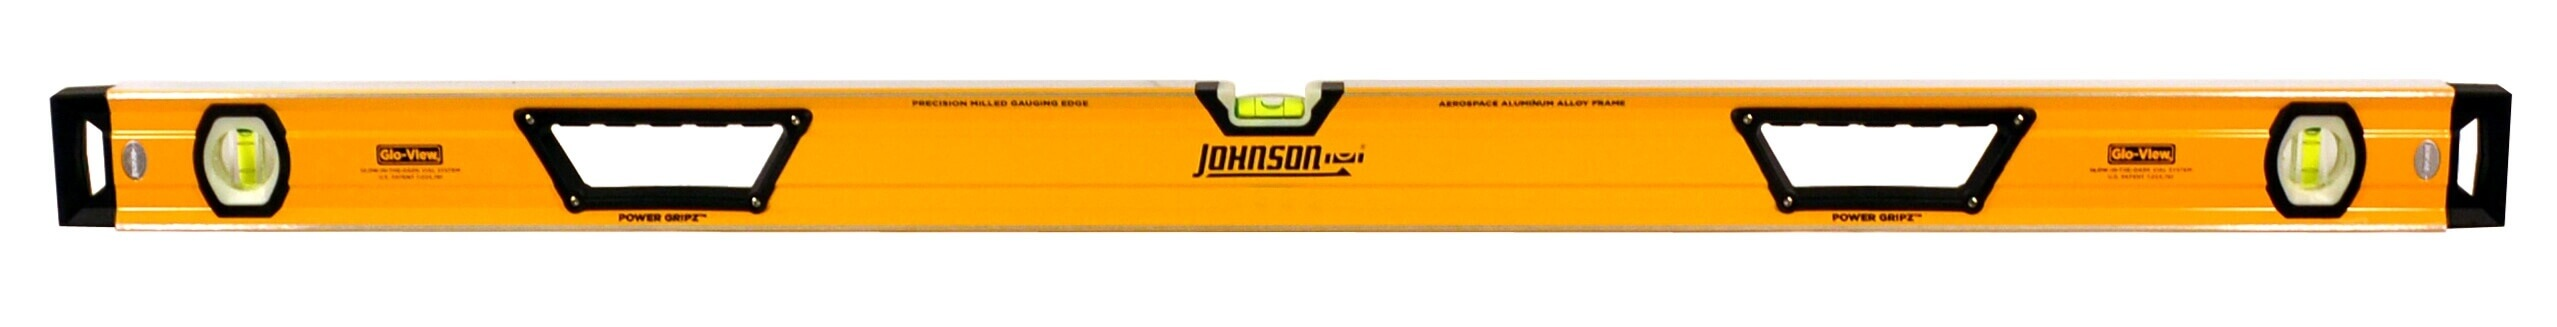 Johnson Level 48 Glo-View Heavy Duty Aluminum Box Level 1717-4800